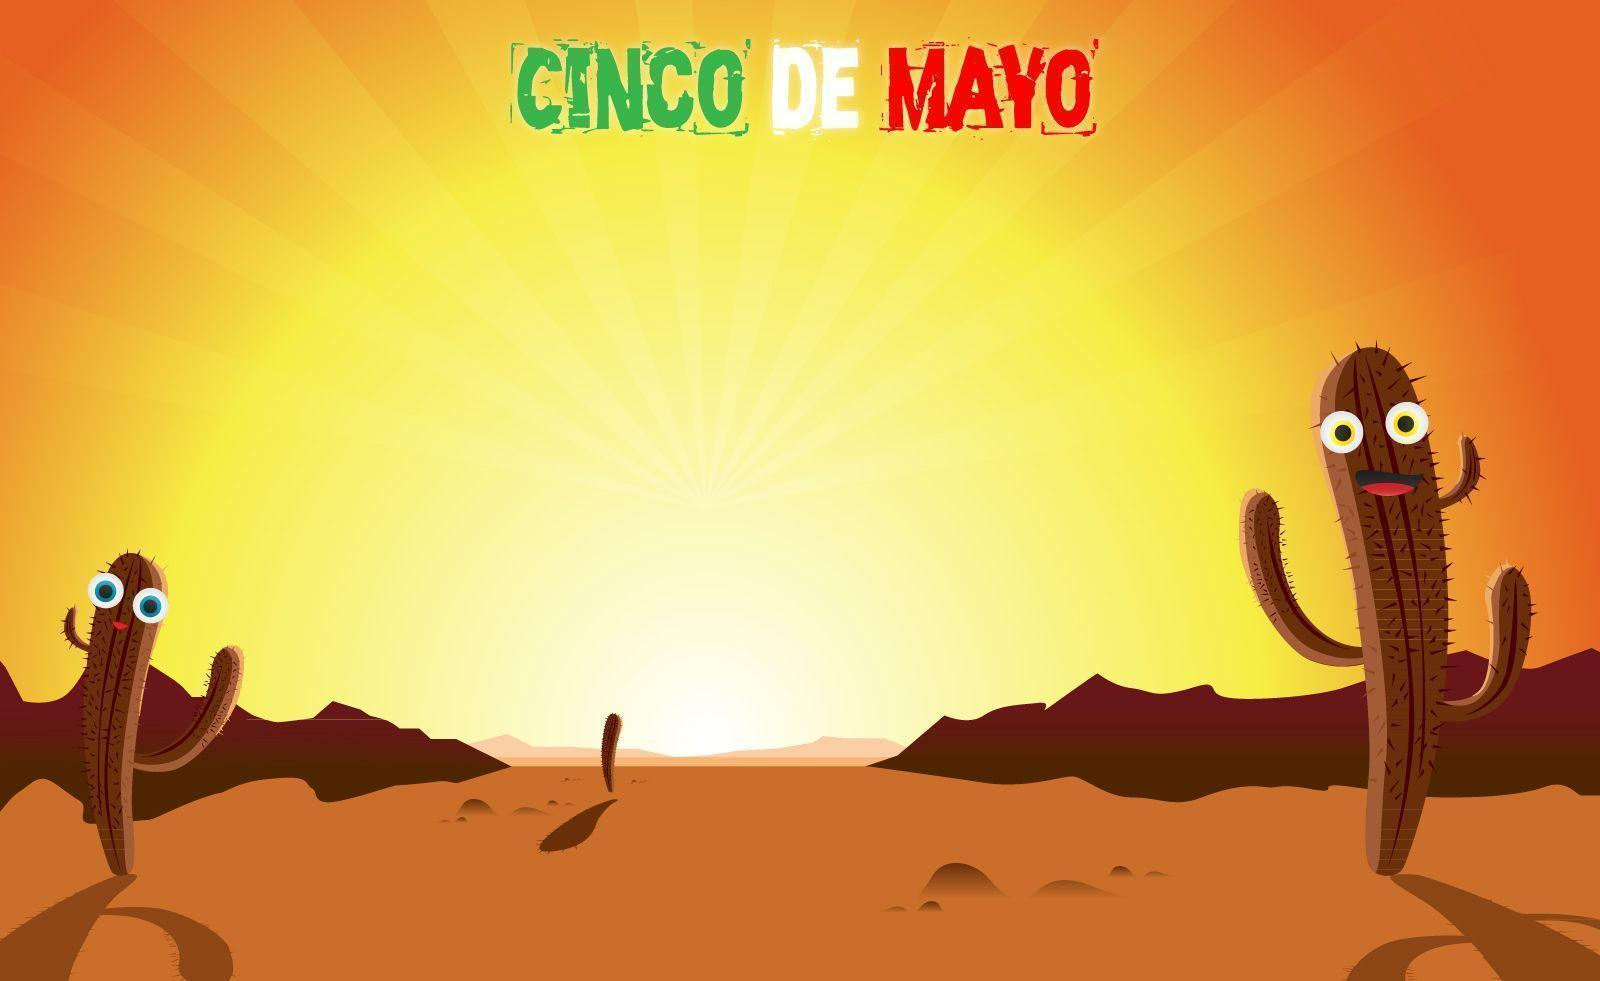 Celebrate Cinco de Mayo Free Wallpaper for Facebook®, Twitter® and ...